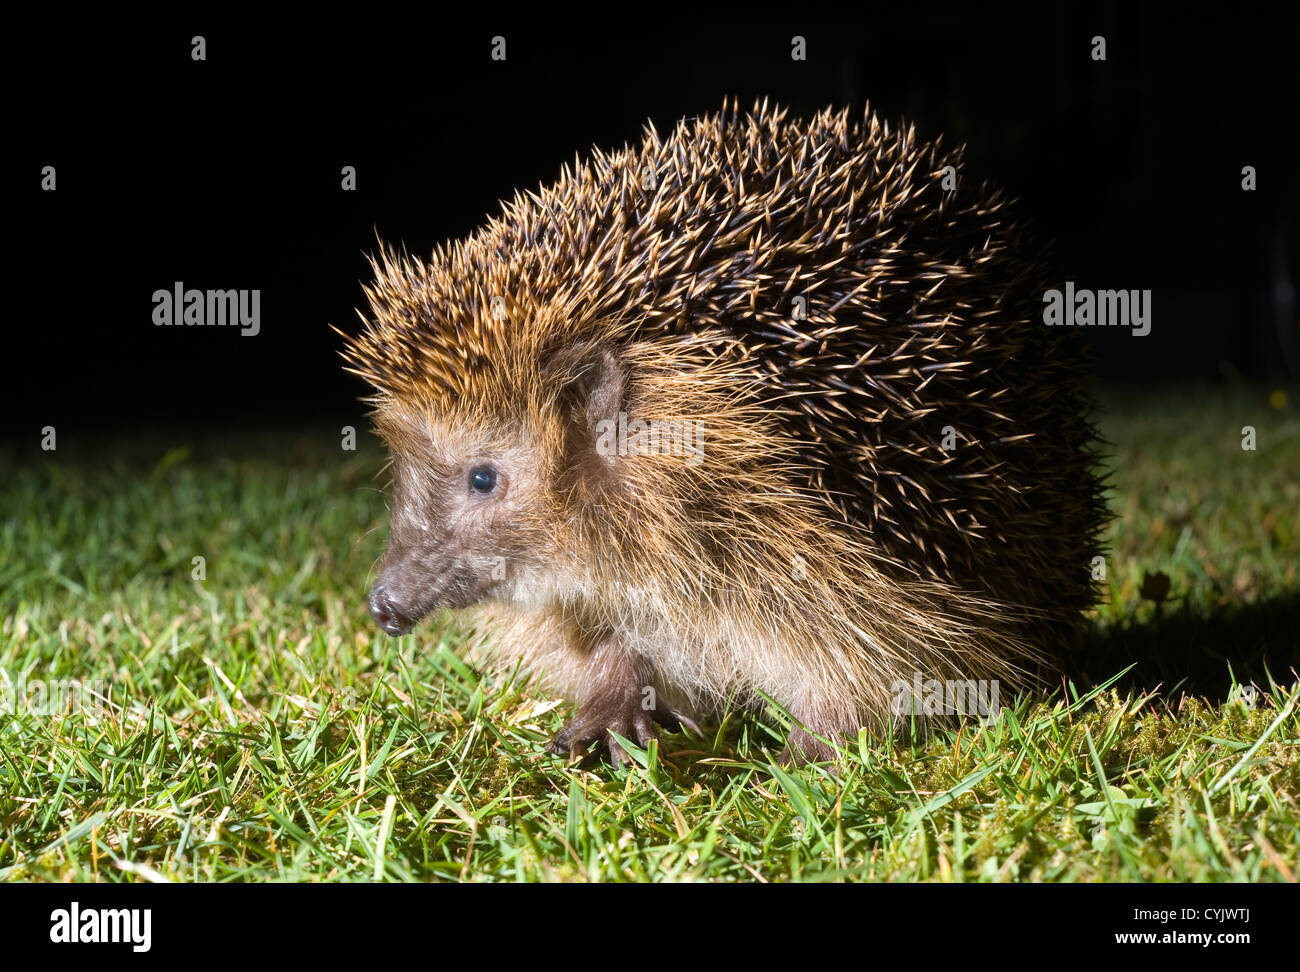 A hedgehog is walking in the grass in the dark in a garden - Stock Image